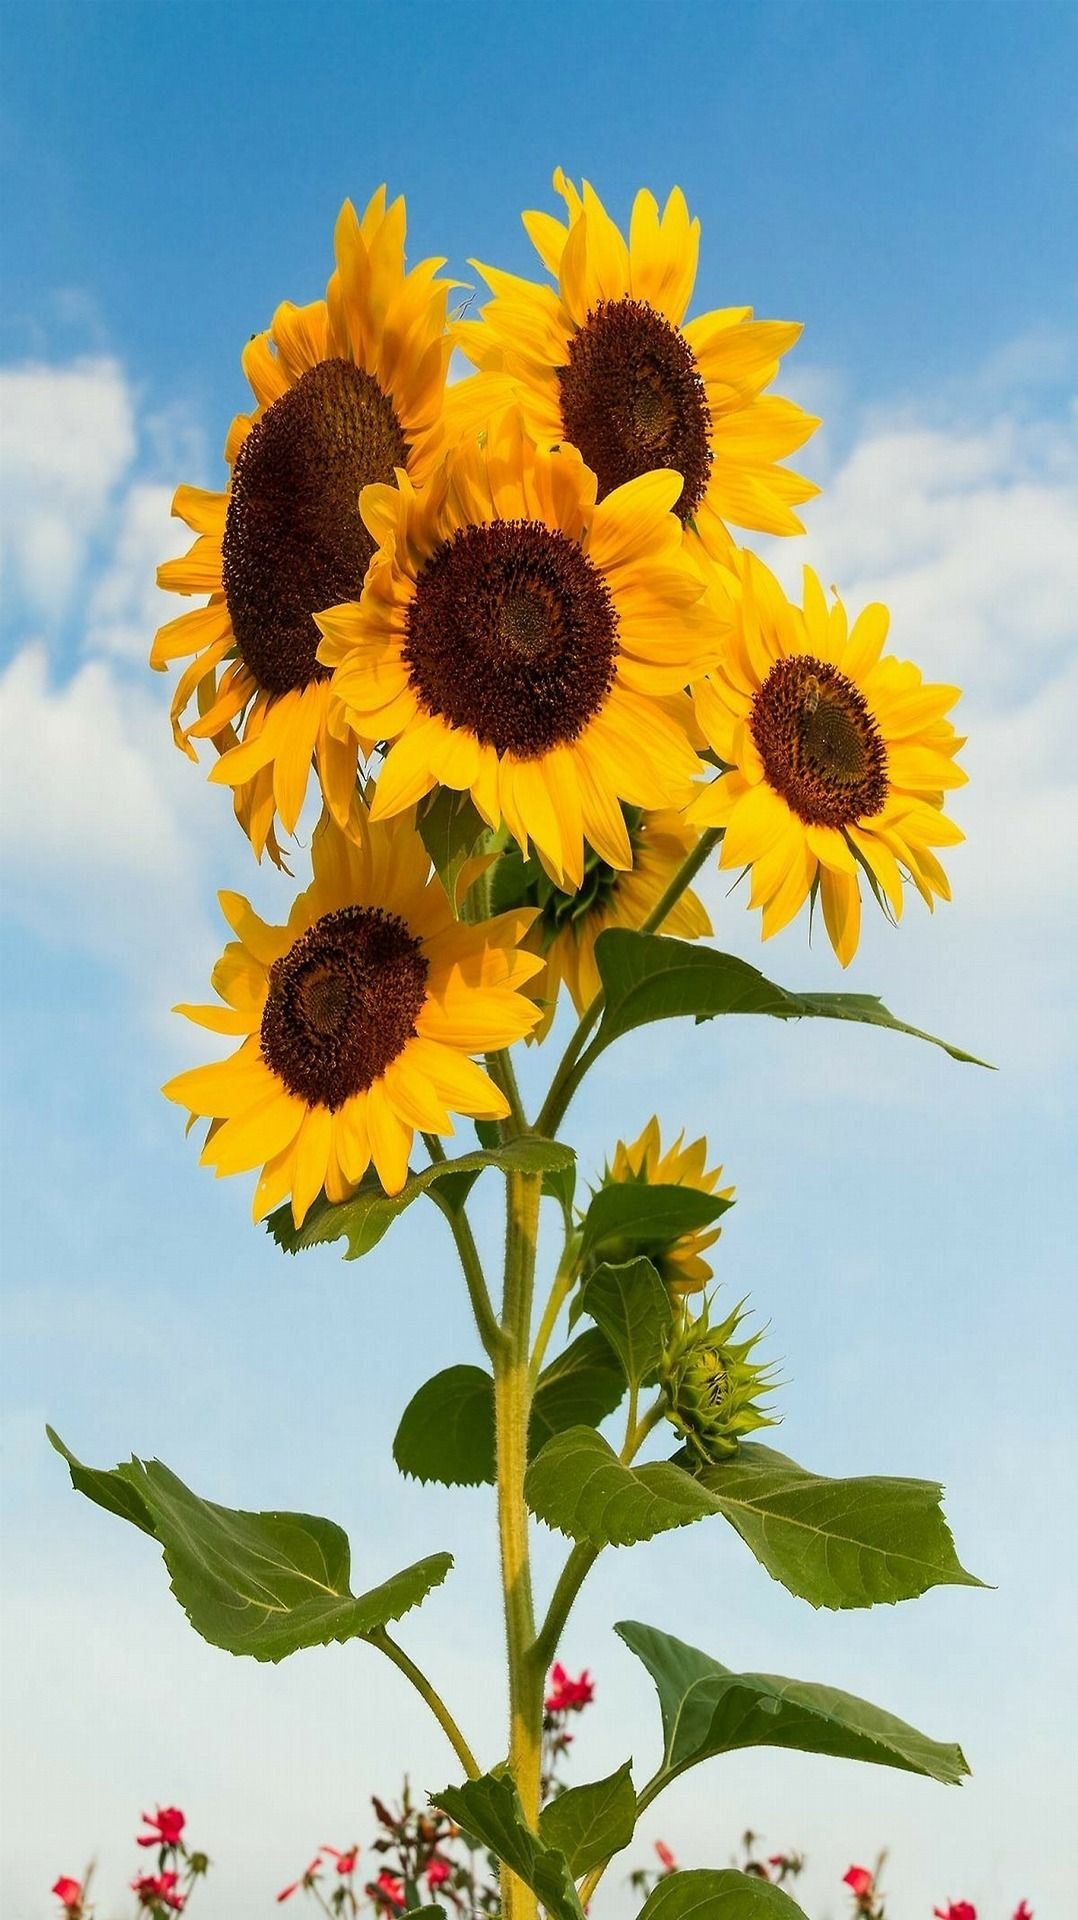 Flowers Beautiful Sunflowers bloom standing tall against